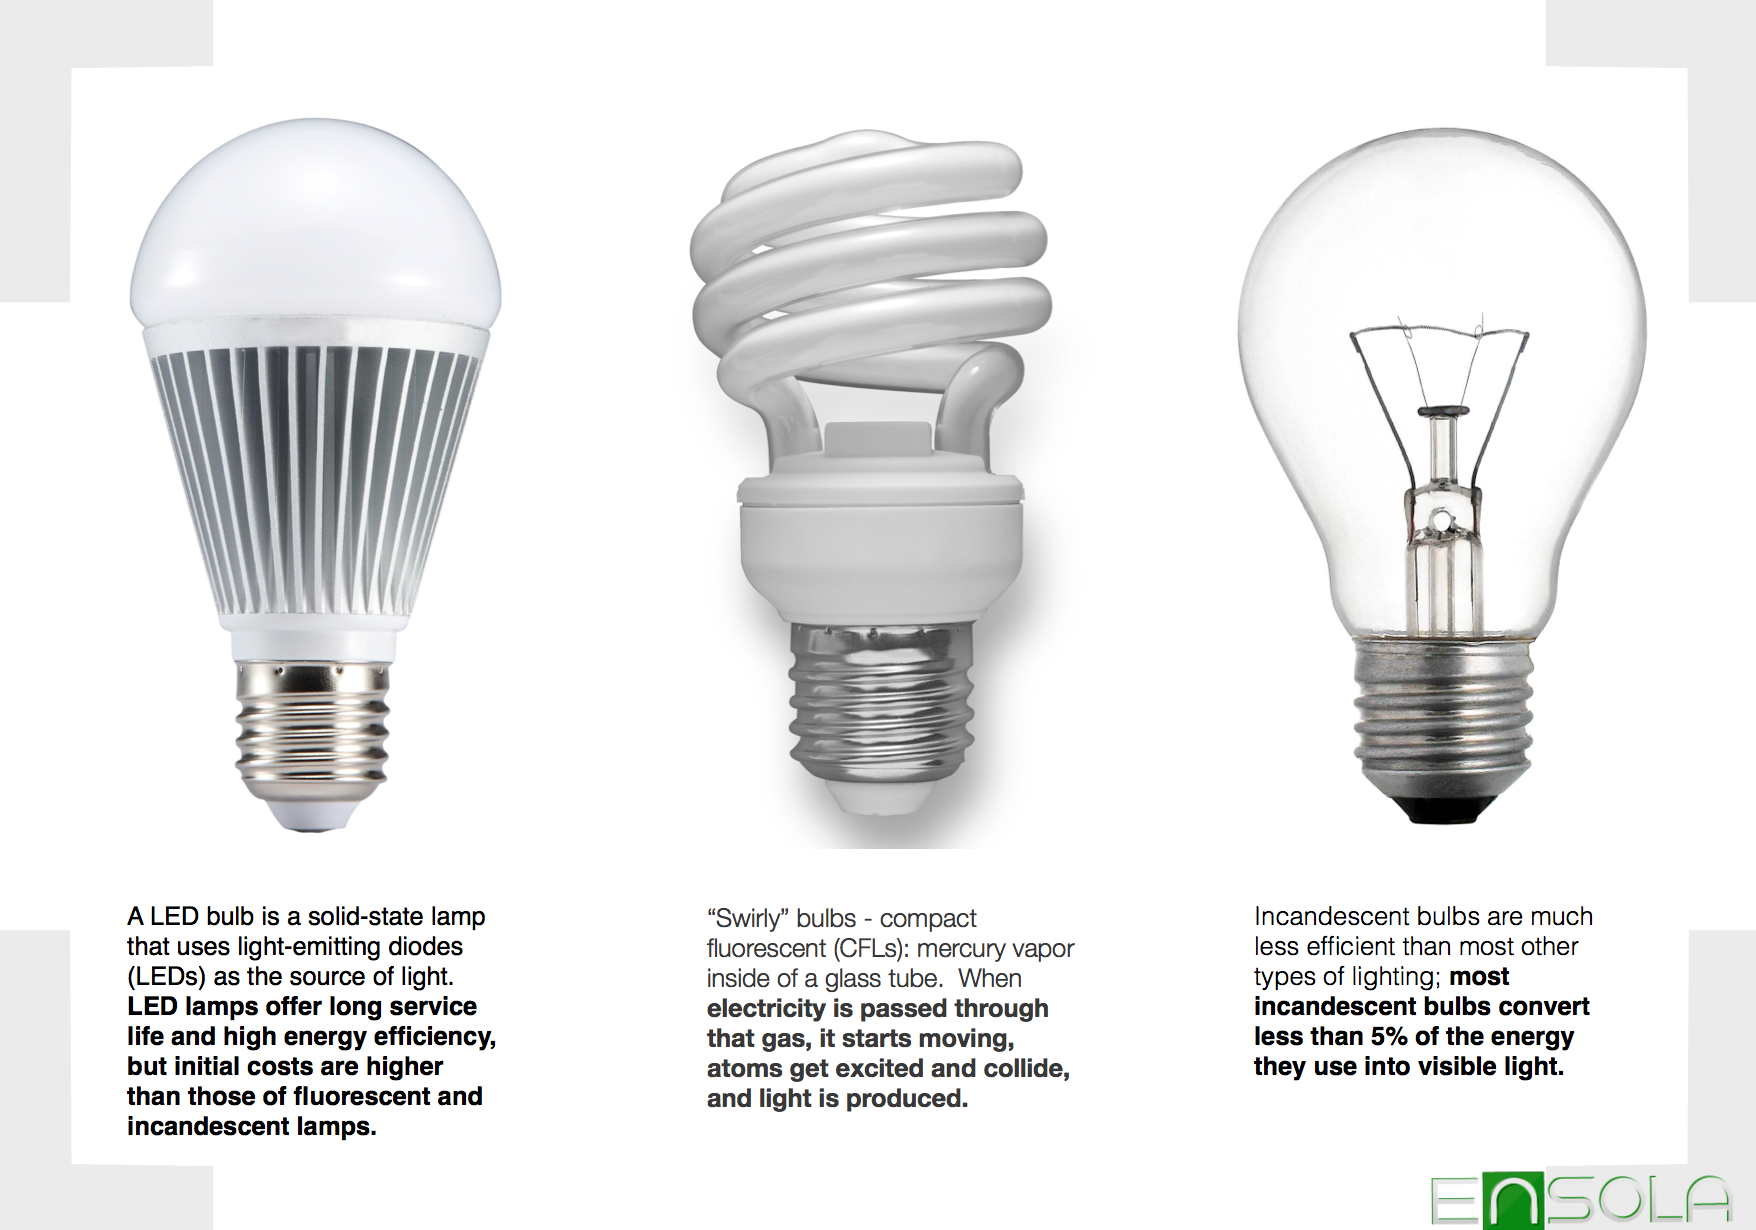 28 Do Led Light Bulbs Get Mathura To Get 24 28 How Much Are Led Light Bulbs Lighting Energy: led light bulb cost